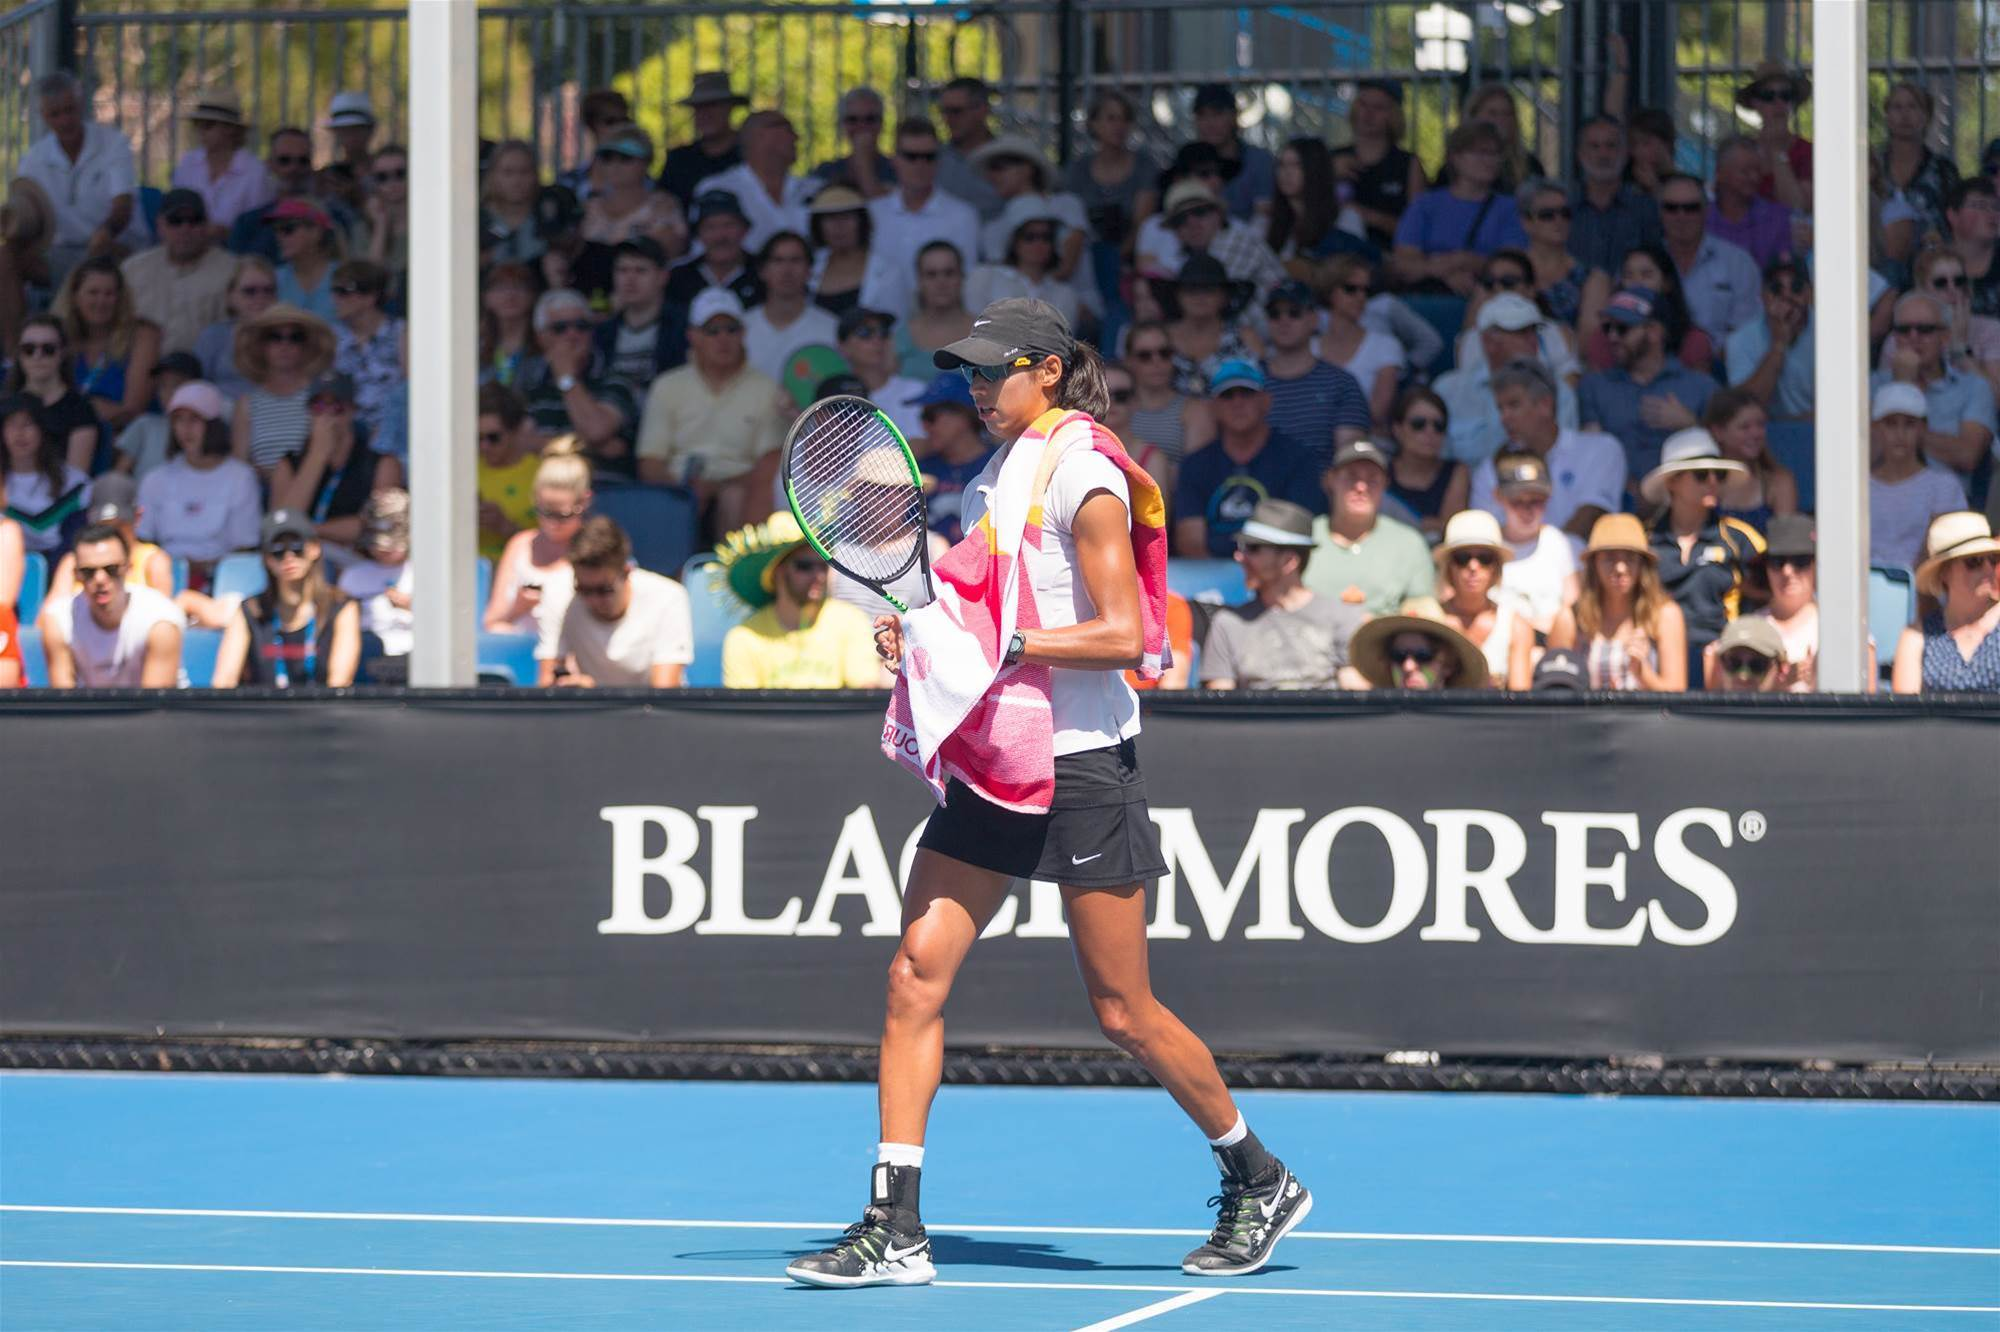 Grand Slam debutants shine at Melbourne Park